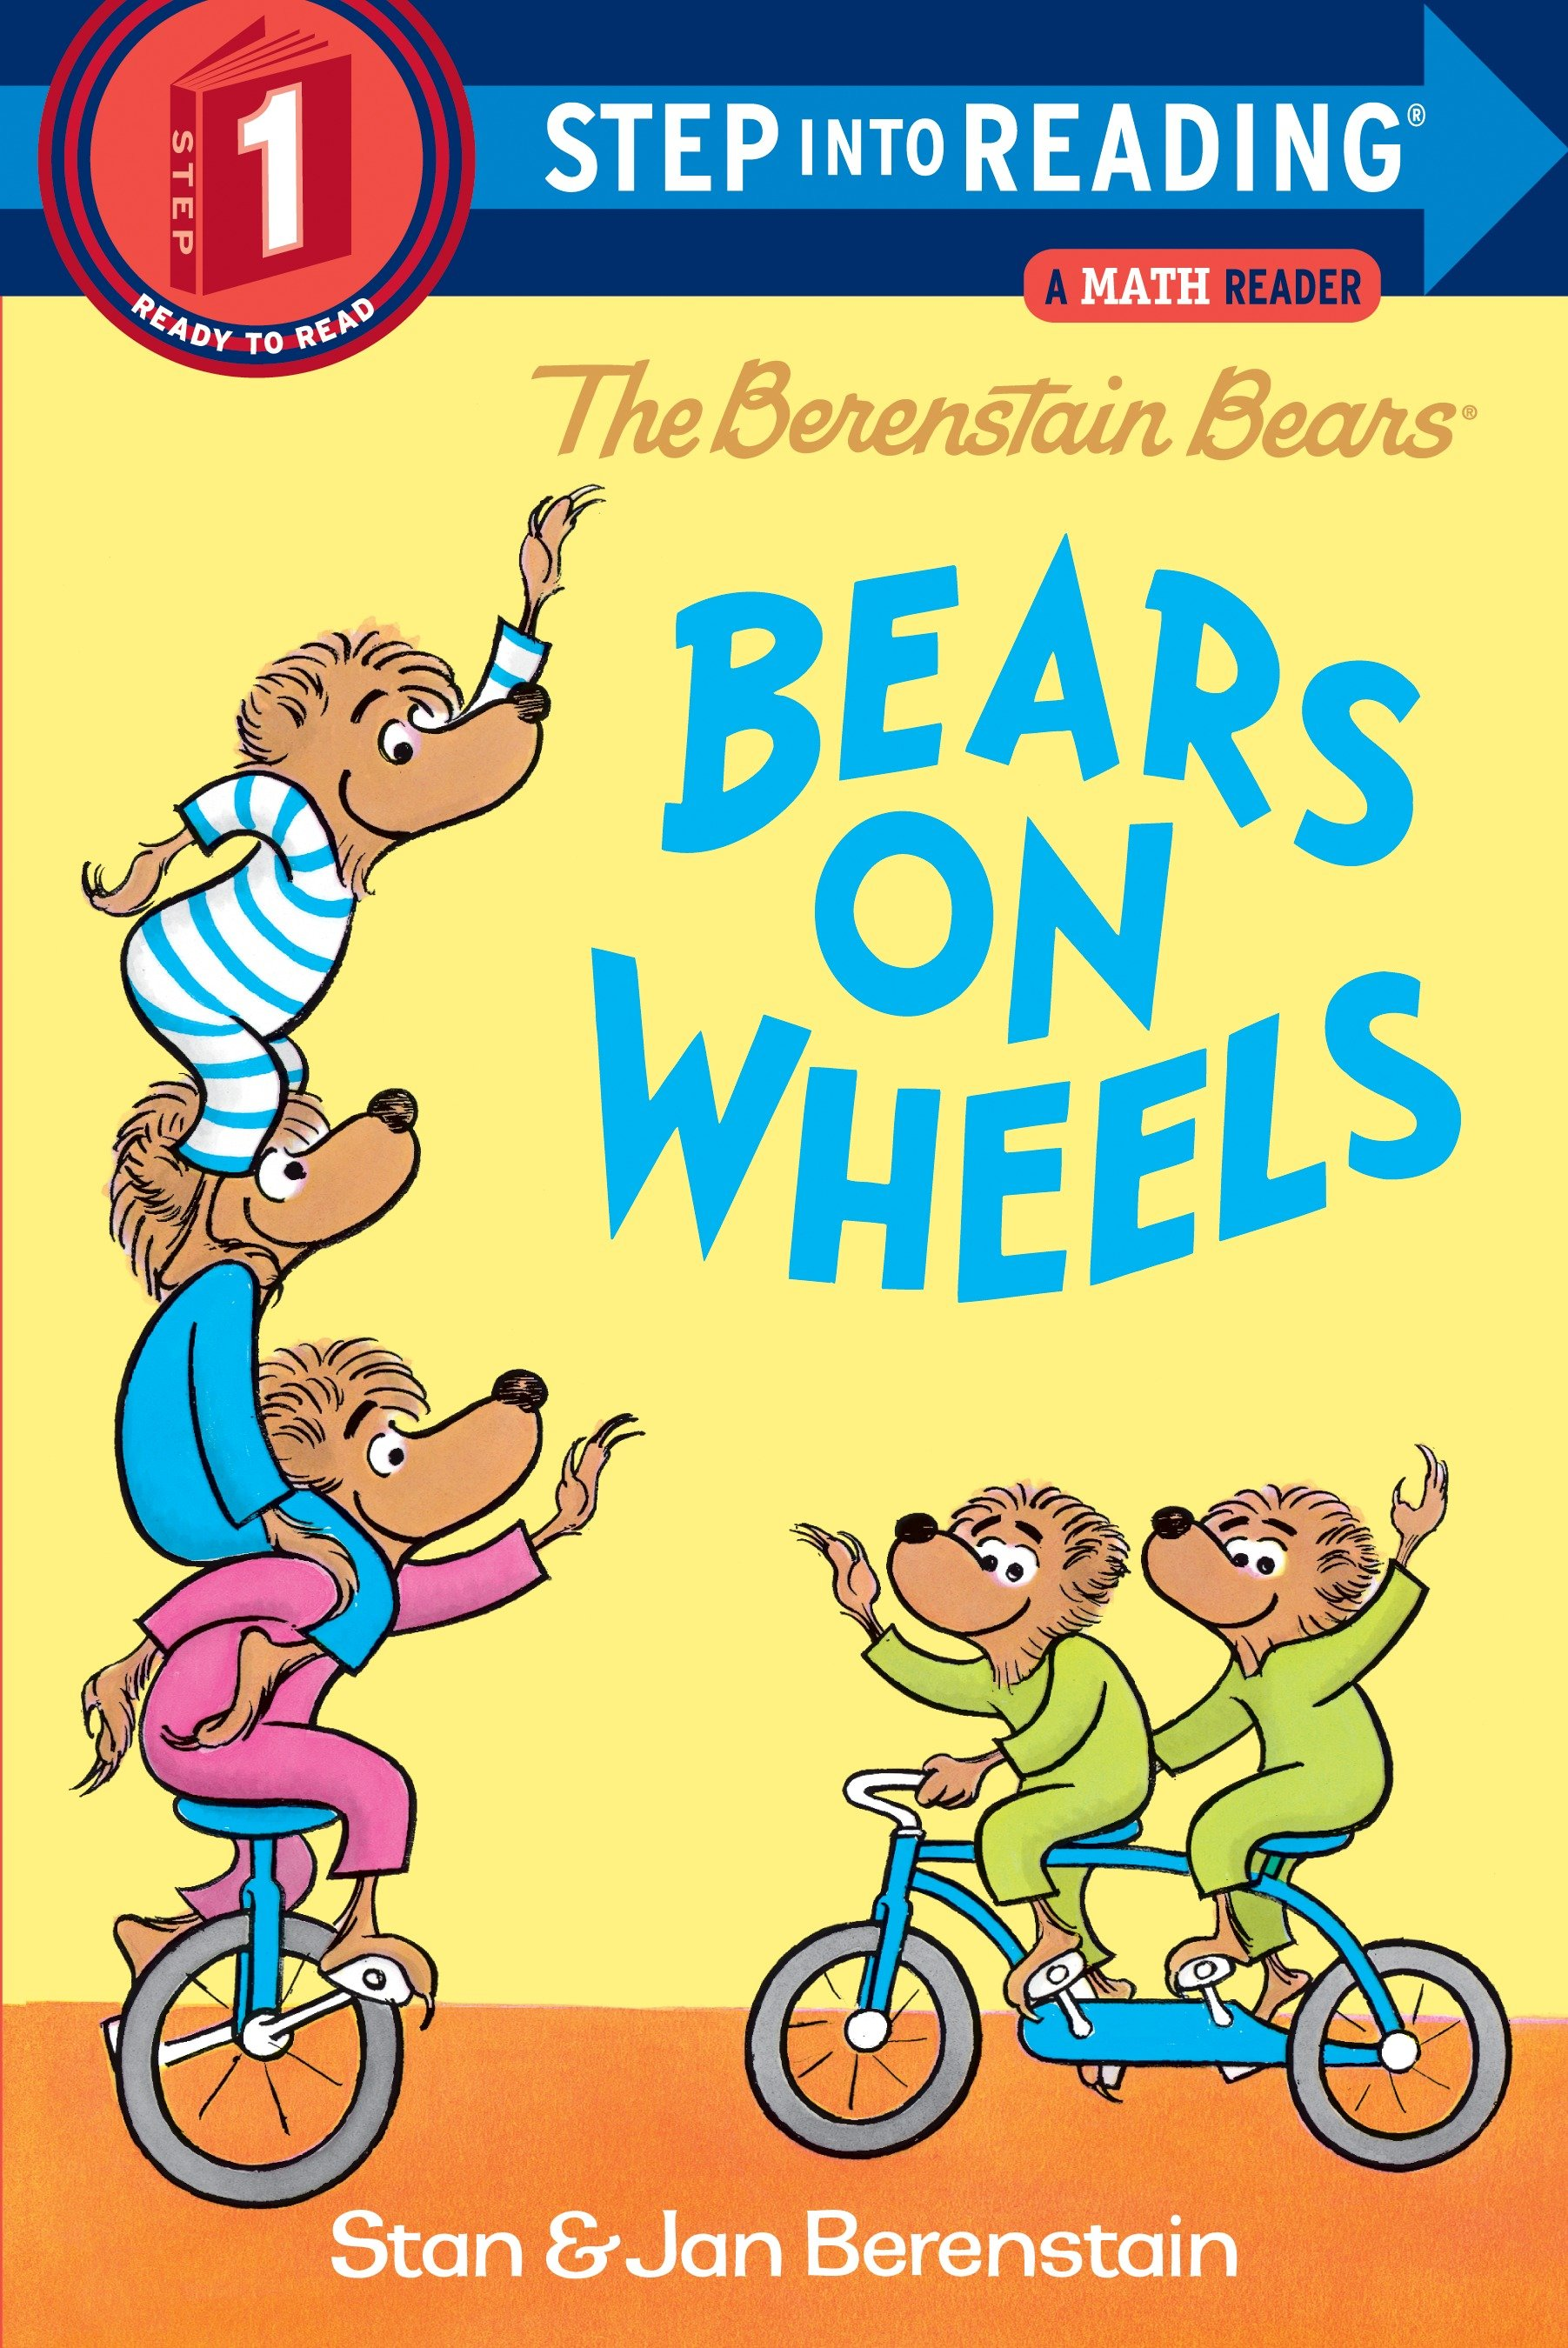 The Berenstain Bears bears on wheels cover image